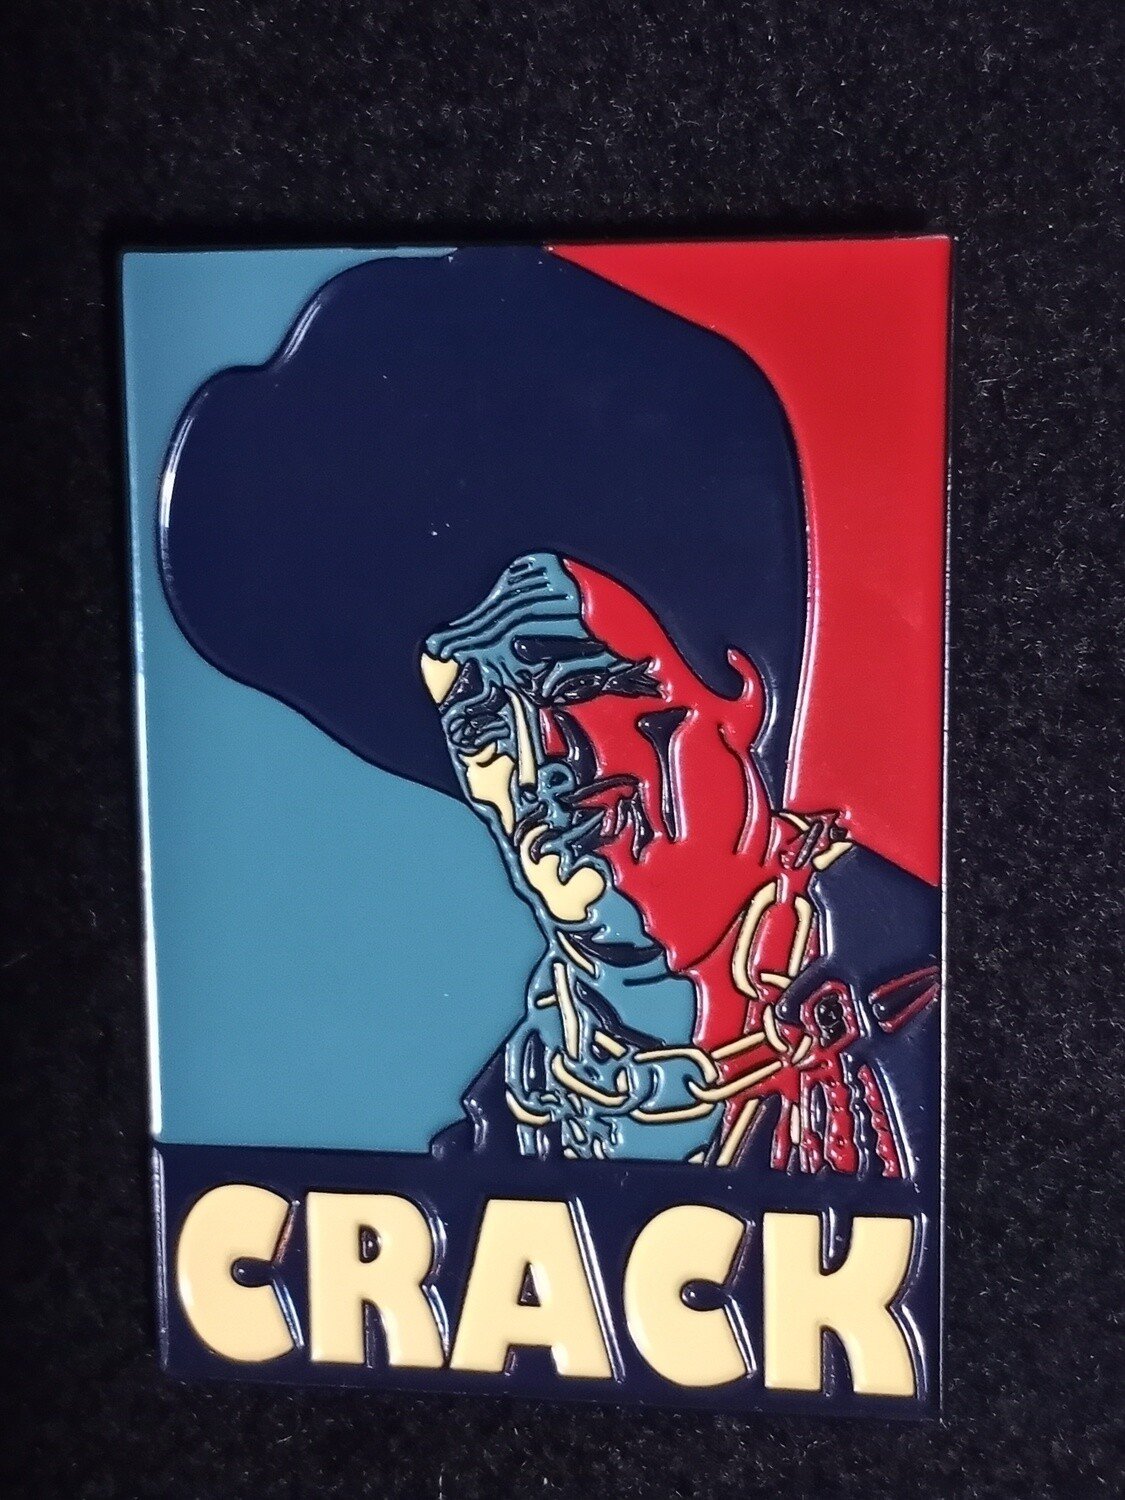 Unlimited Edition Sleazy Crack Pin